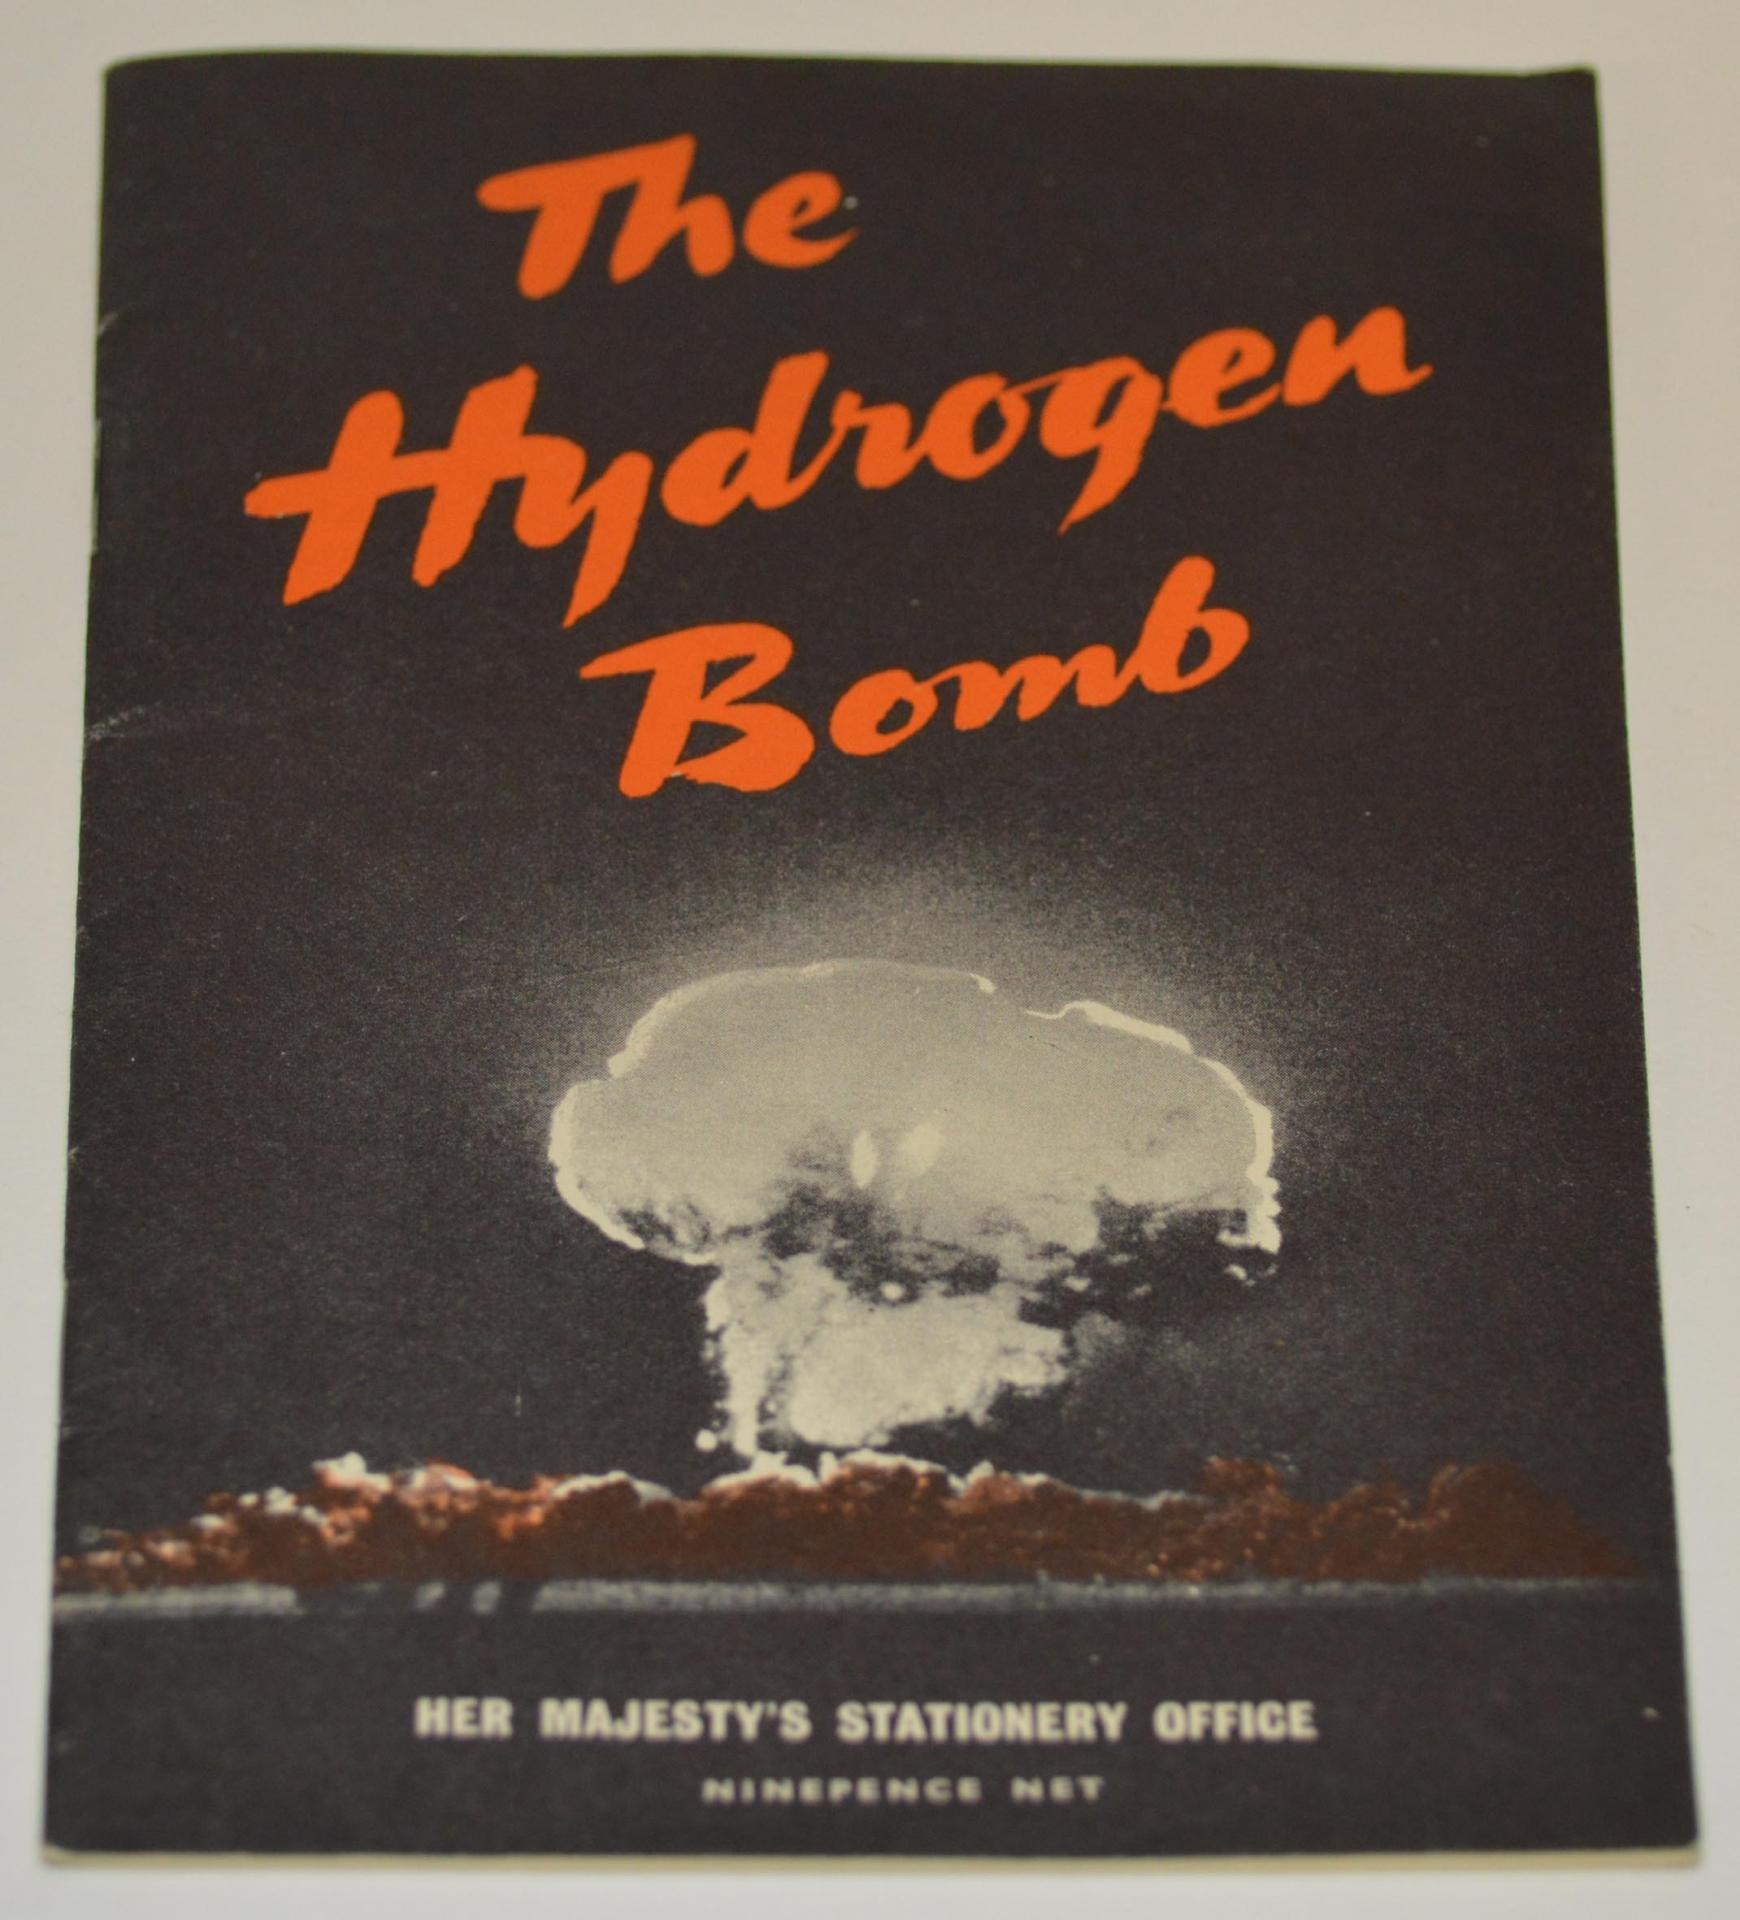 surviving the cold war When america dropped a bomb on japan in 1945 it marked the end of world war 2 and the beginning of the cold war the government urged citizens to be prepared for the.